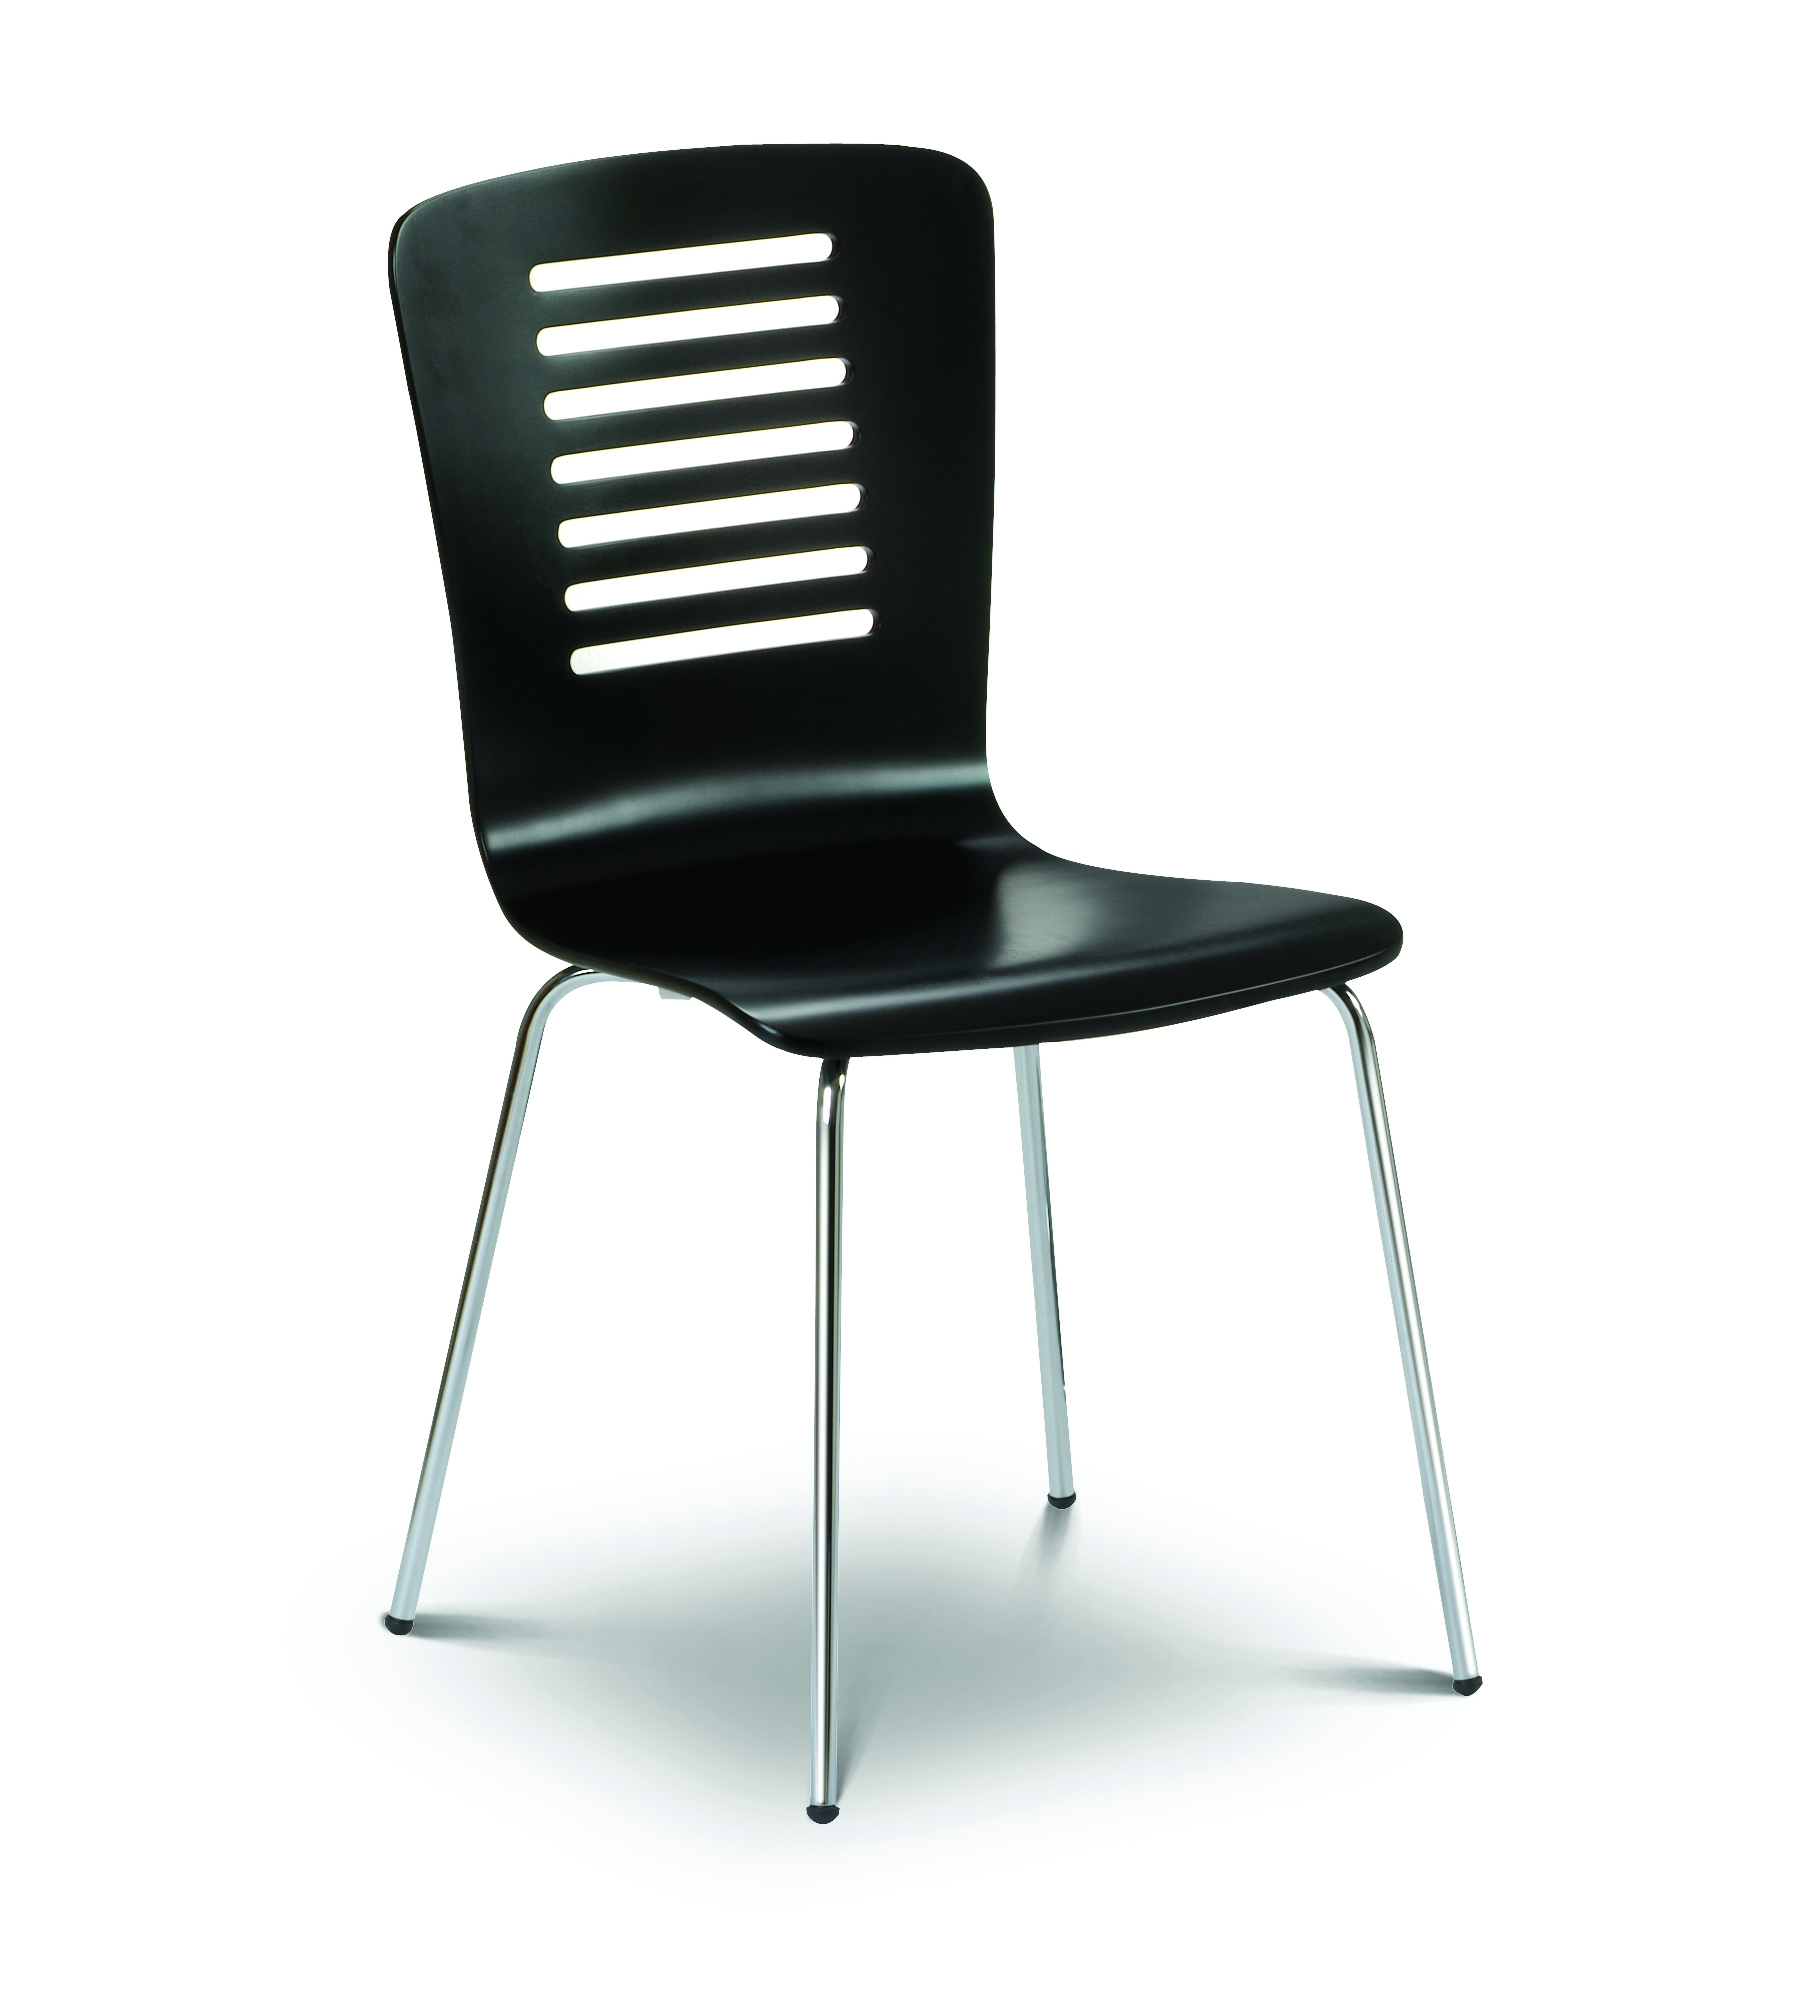 Kudos Chair